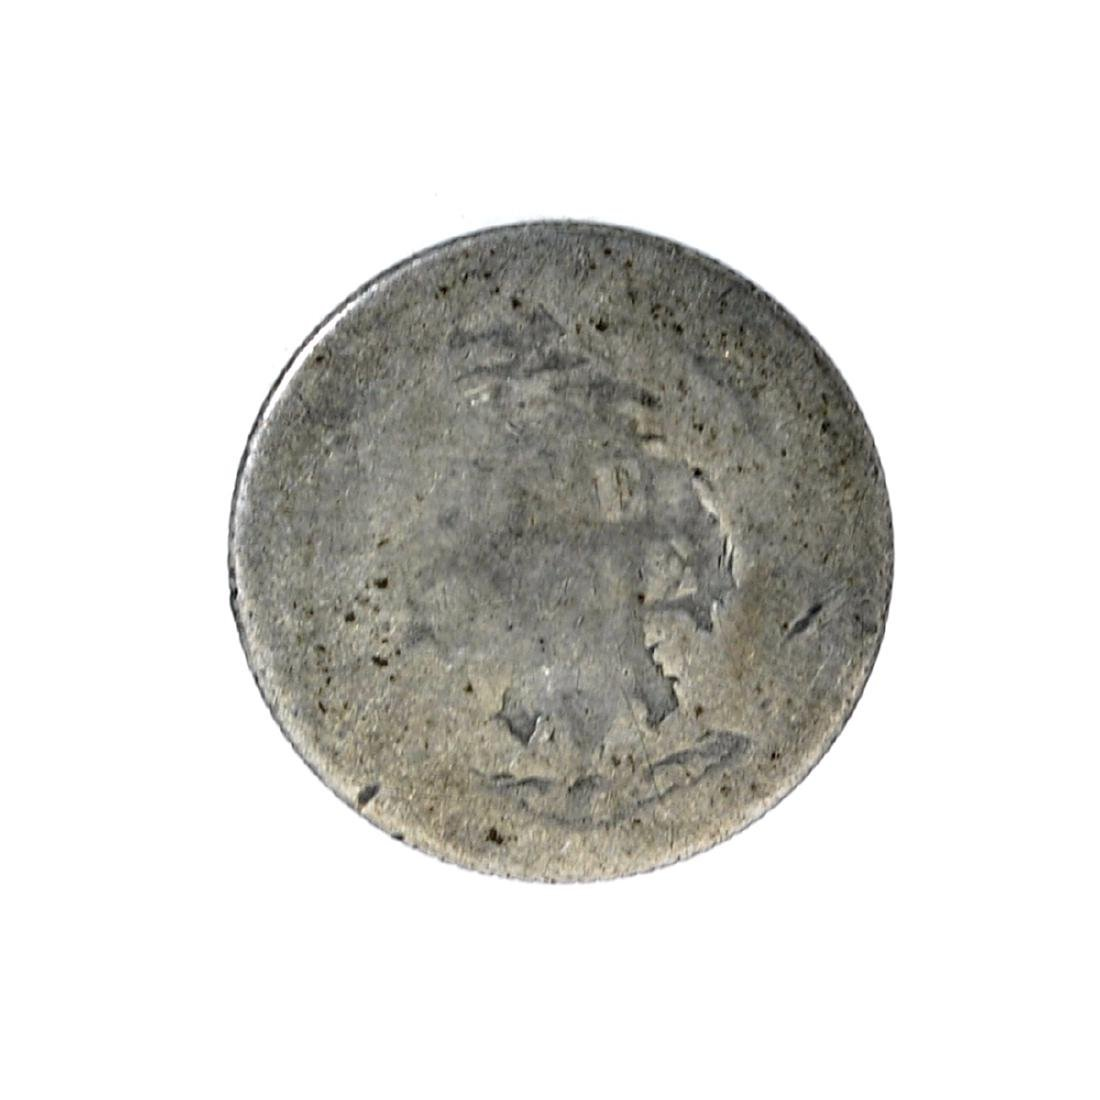 1875 Liberty Seated Dime Coin - 2